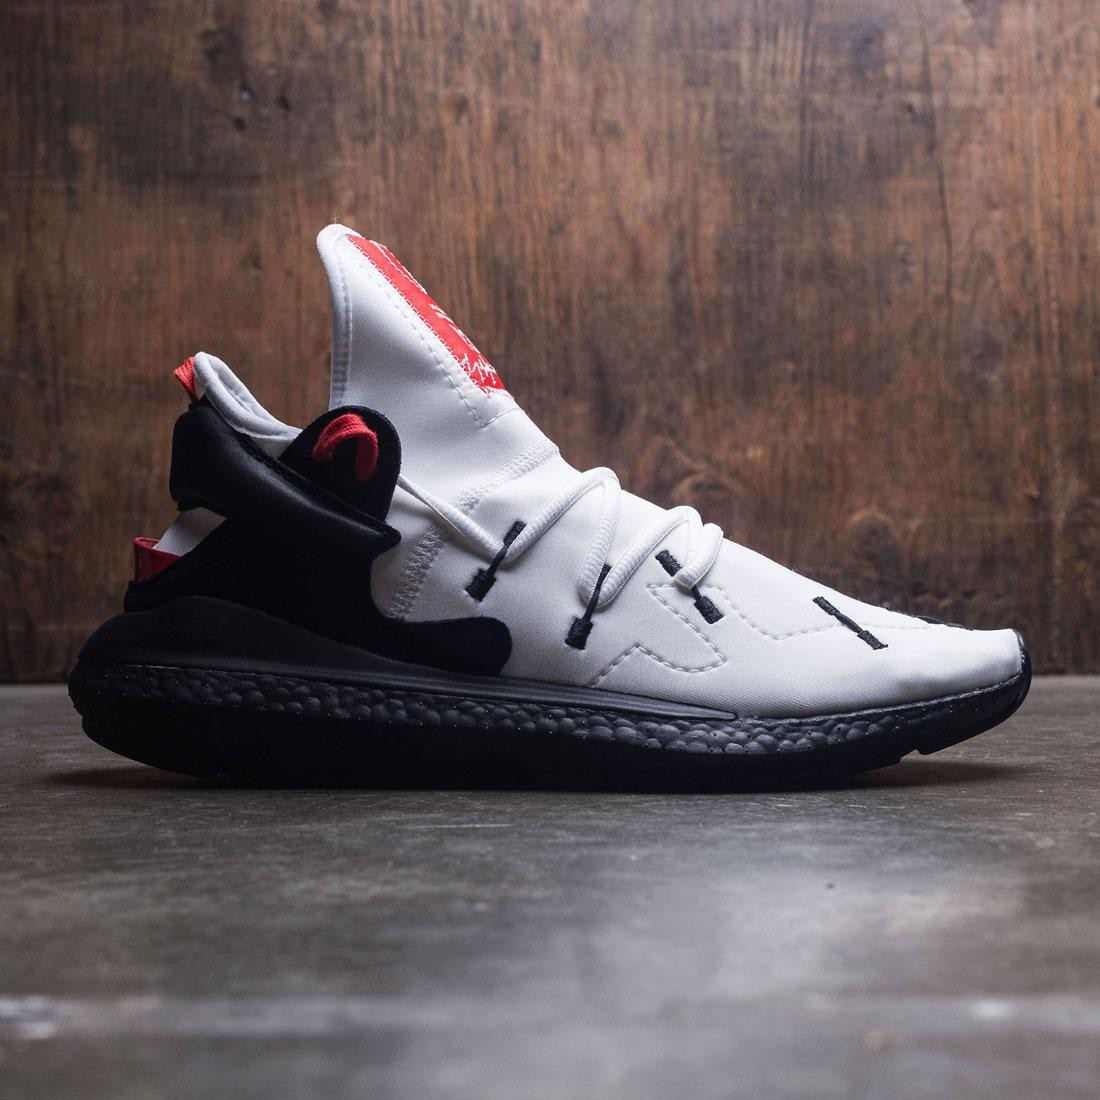 1b0f93331 Adidas Y-3 Men Kusari II white black lush red